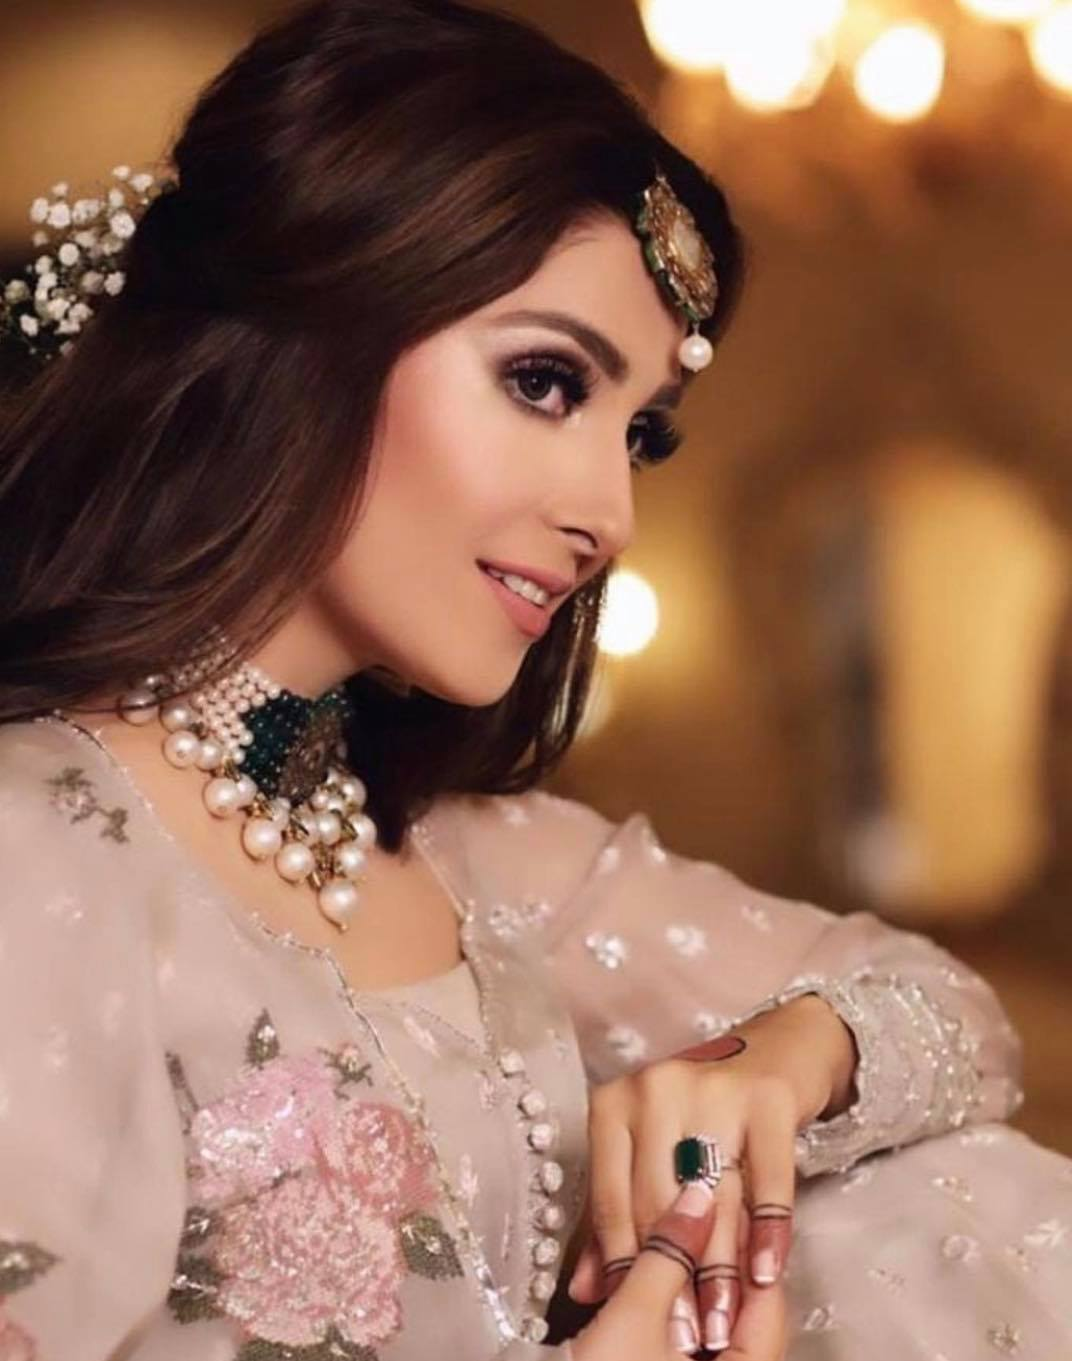 Most Loved Recent Pictures of Pakistani Celebrities